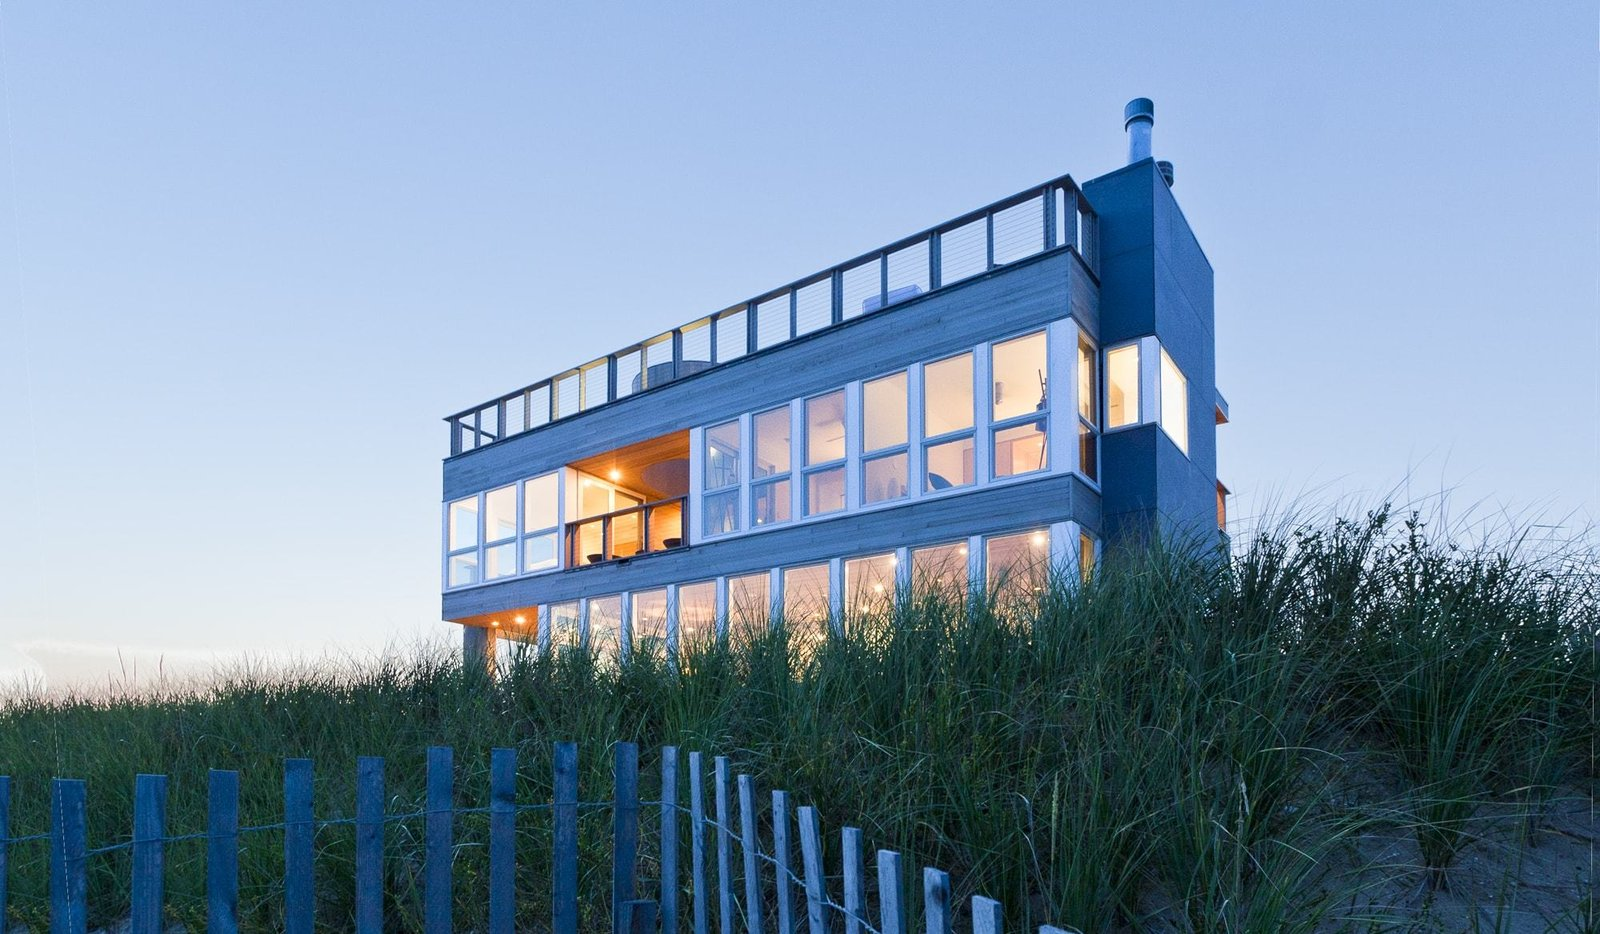 House, Wood, Metal, Outdoor, and Grass Southeast corner from beach  Best Outdoor House Wood Photos from Dune Road Beach House